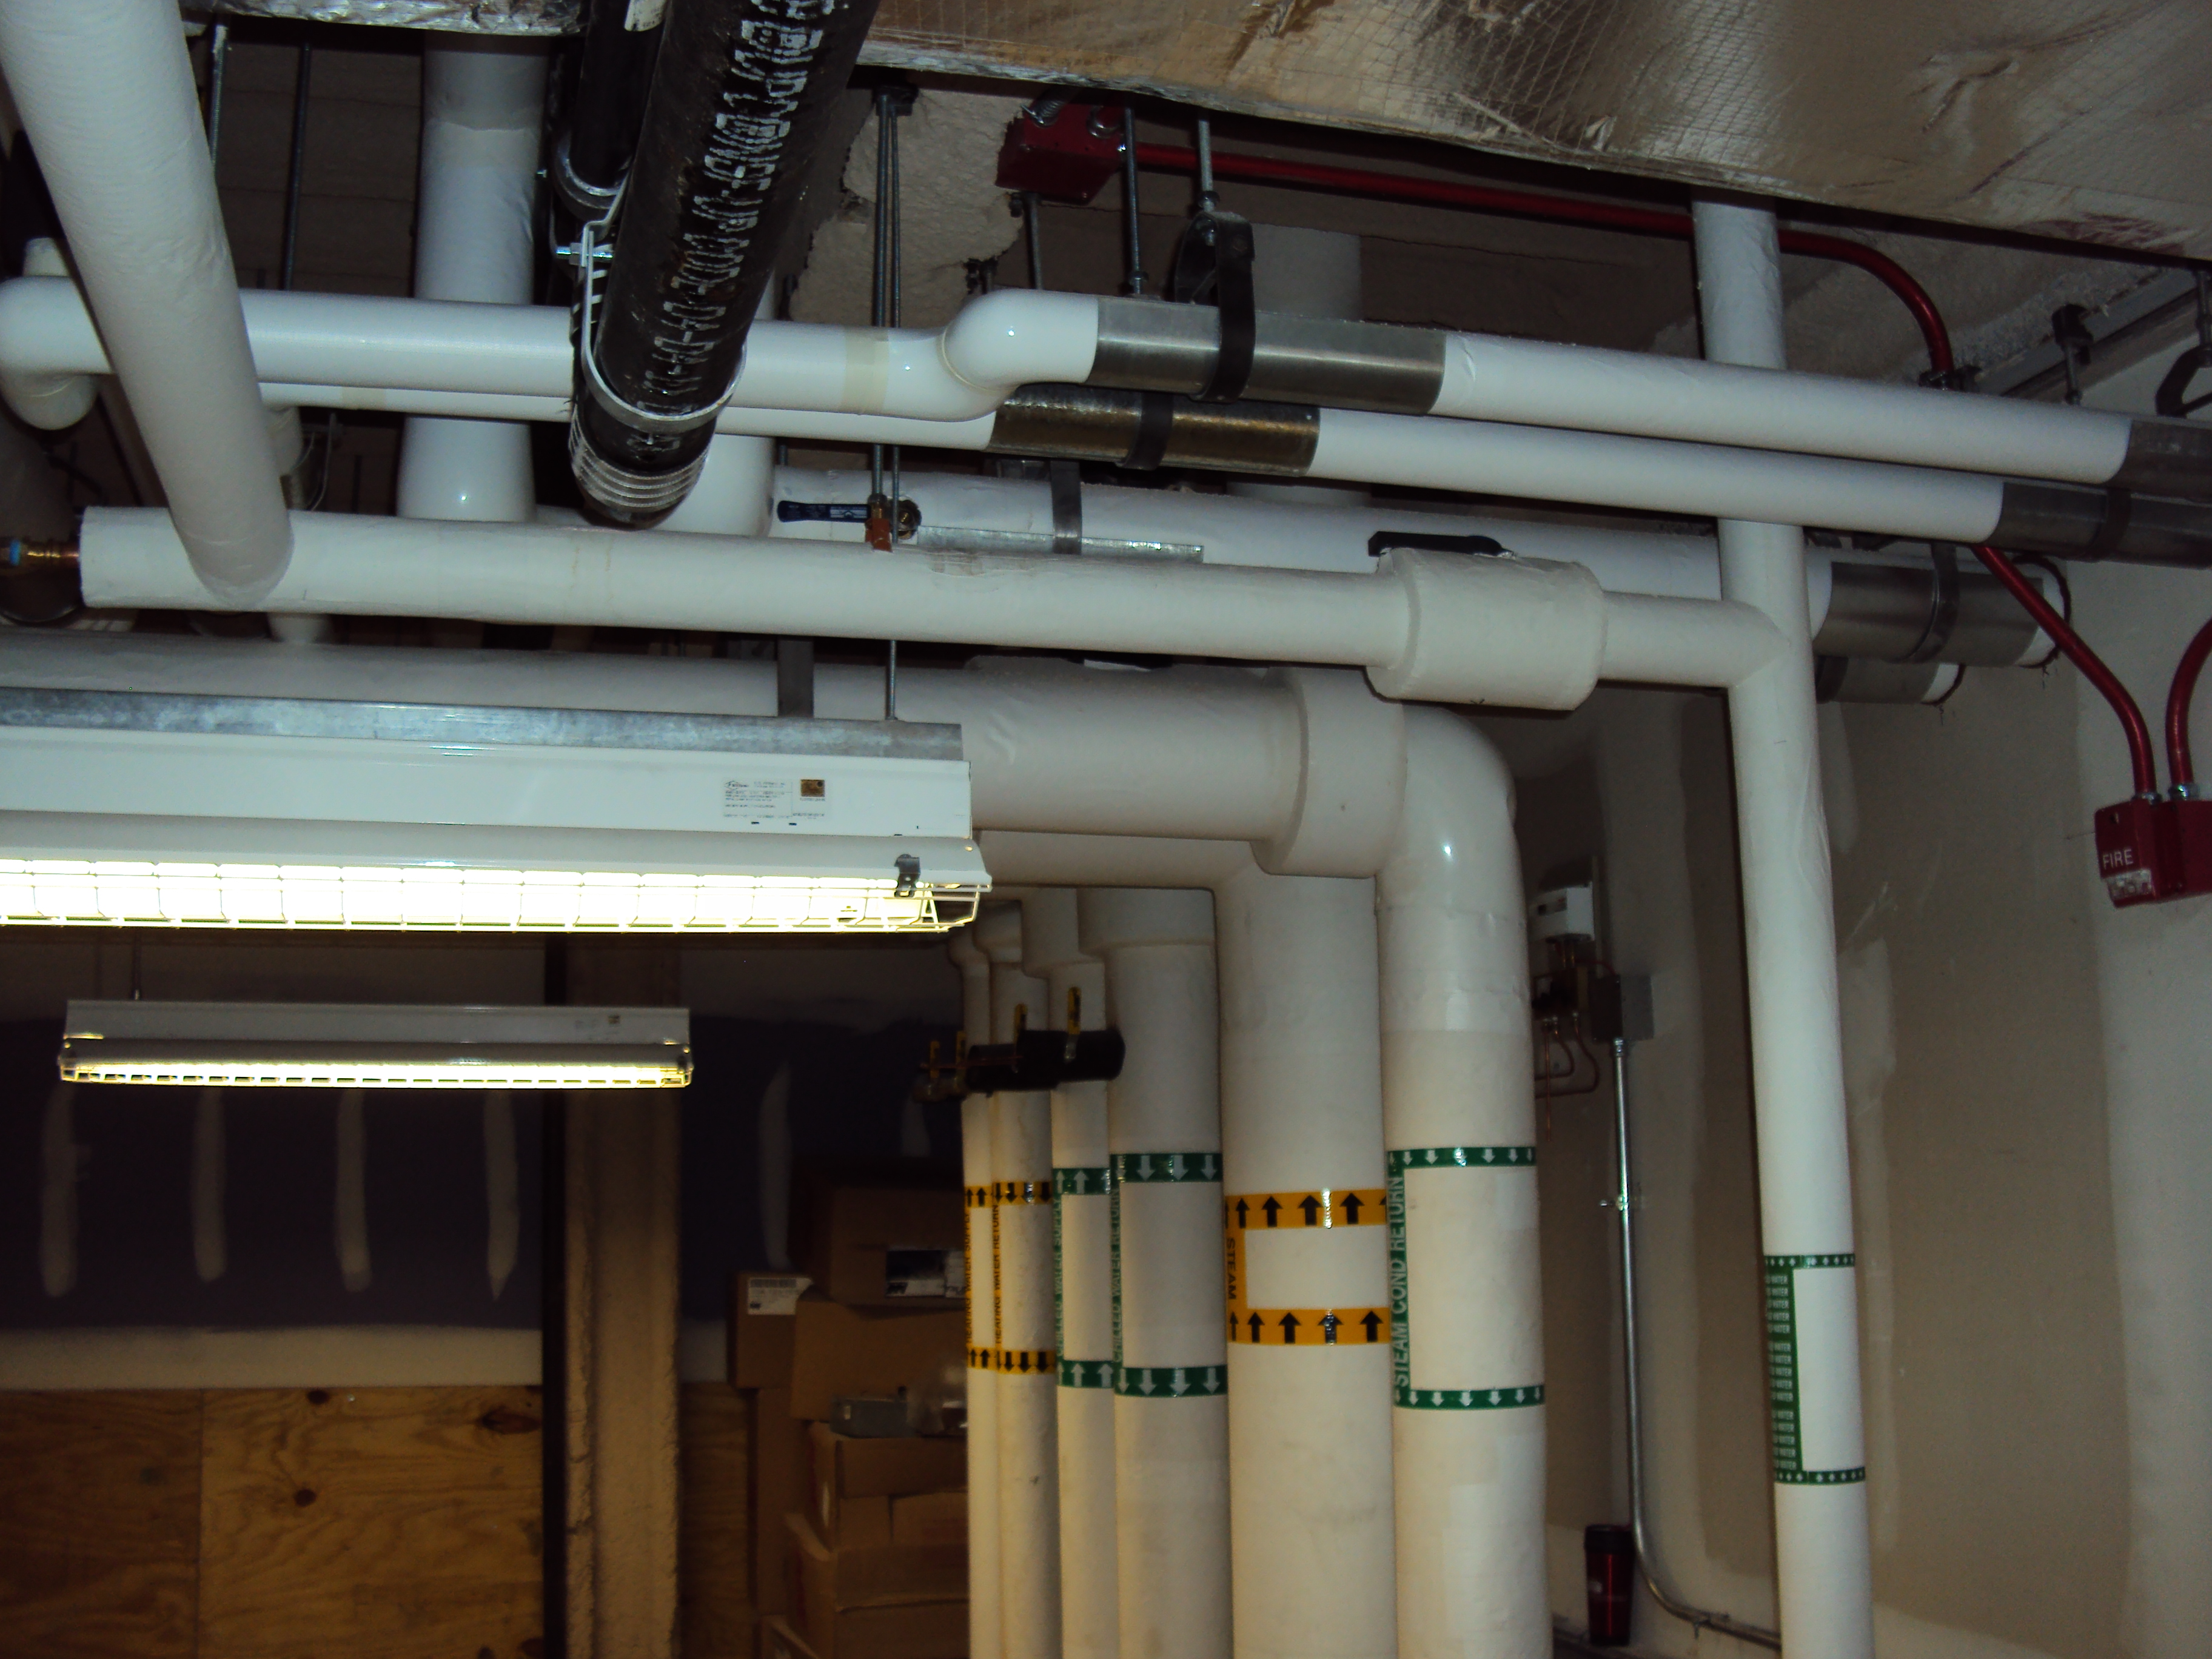 riser piping in mech rm